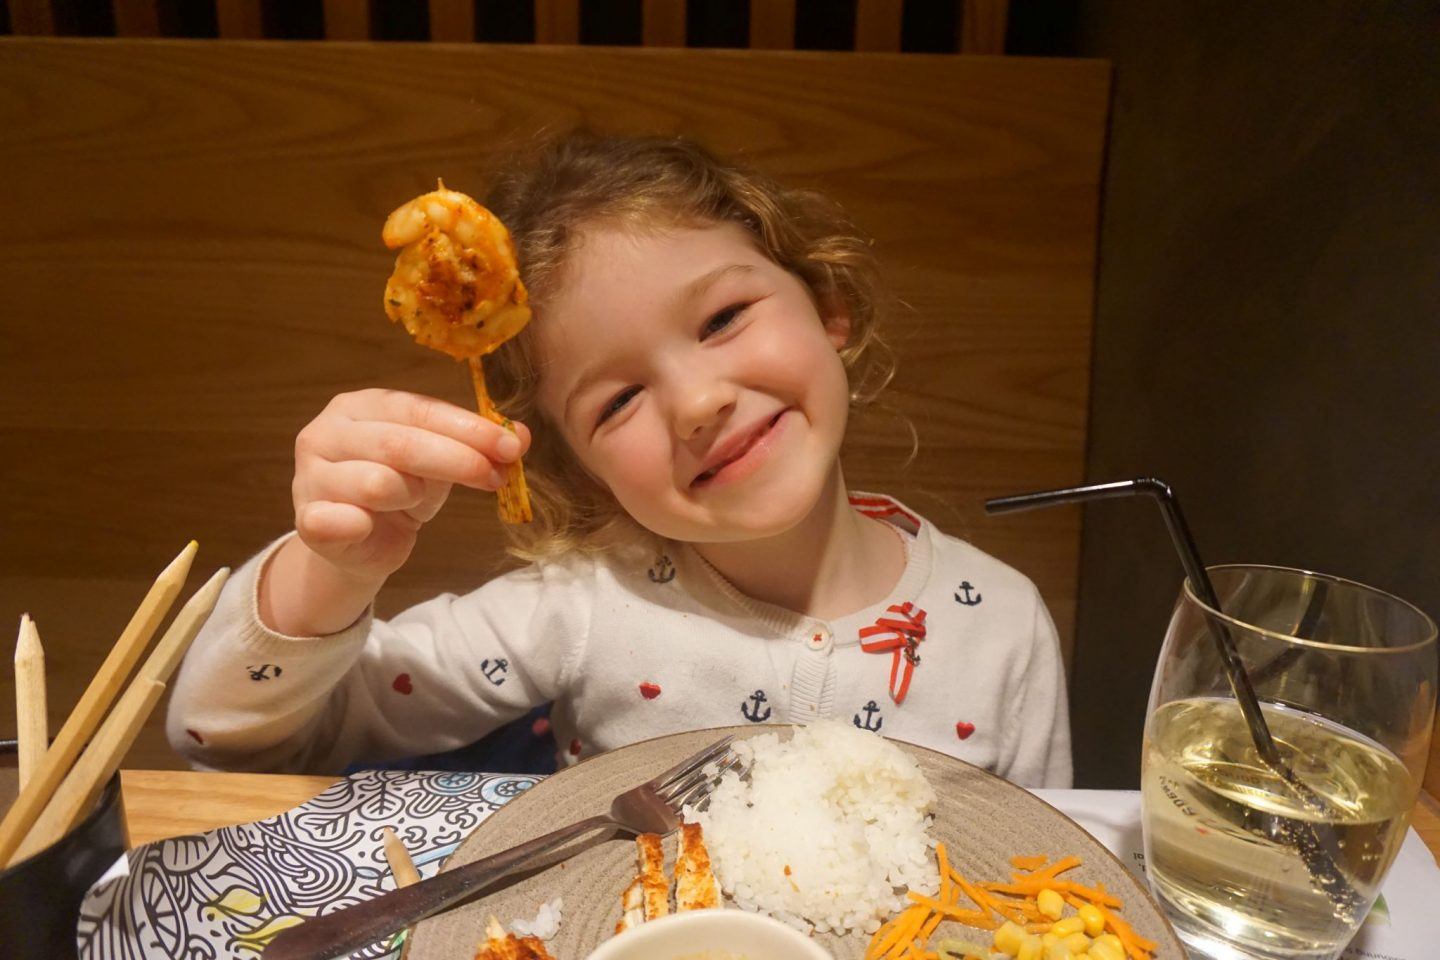 Wagamama and wellness – healthy dishes that are a big hit with kids too